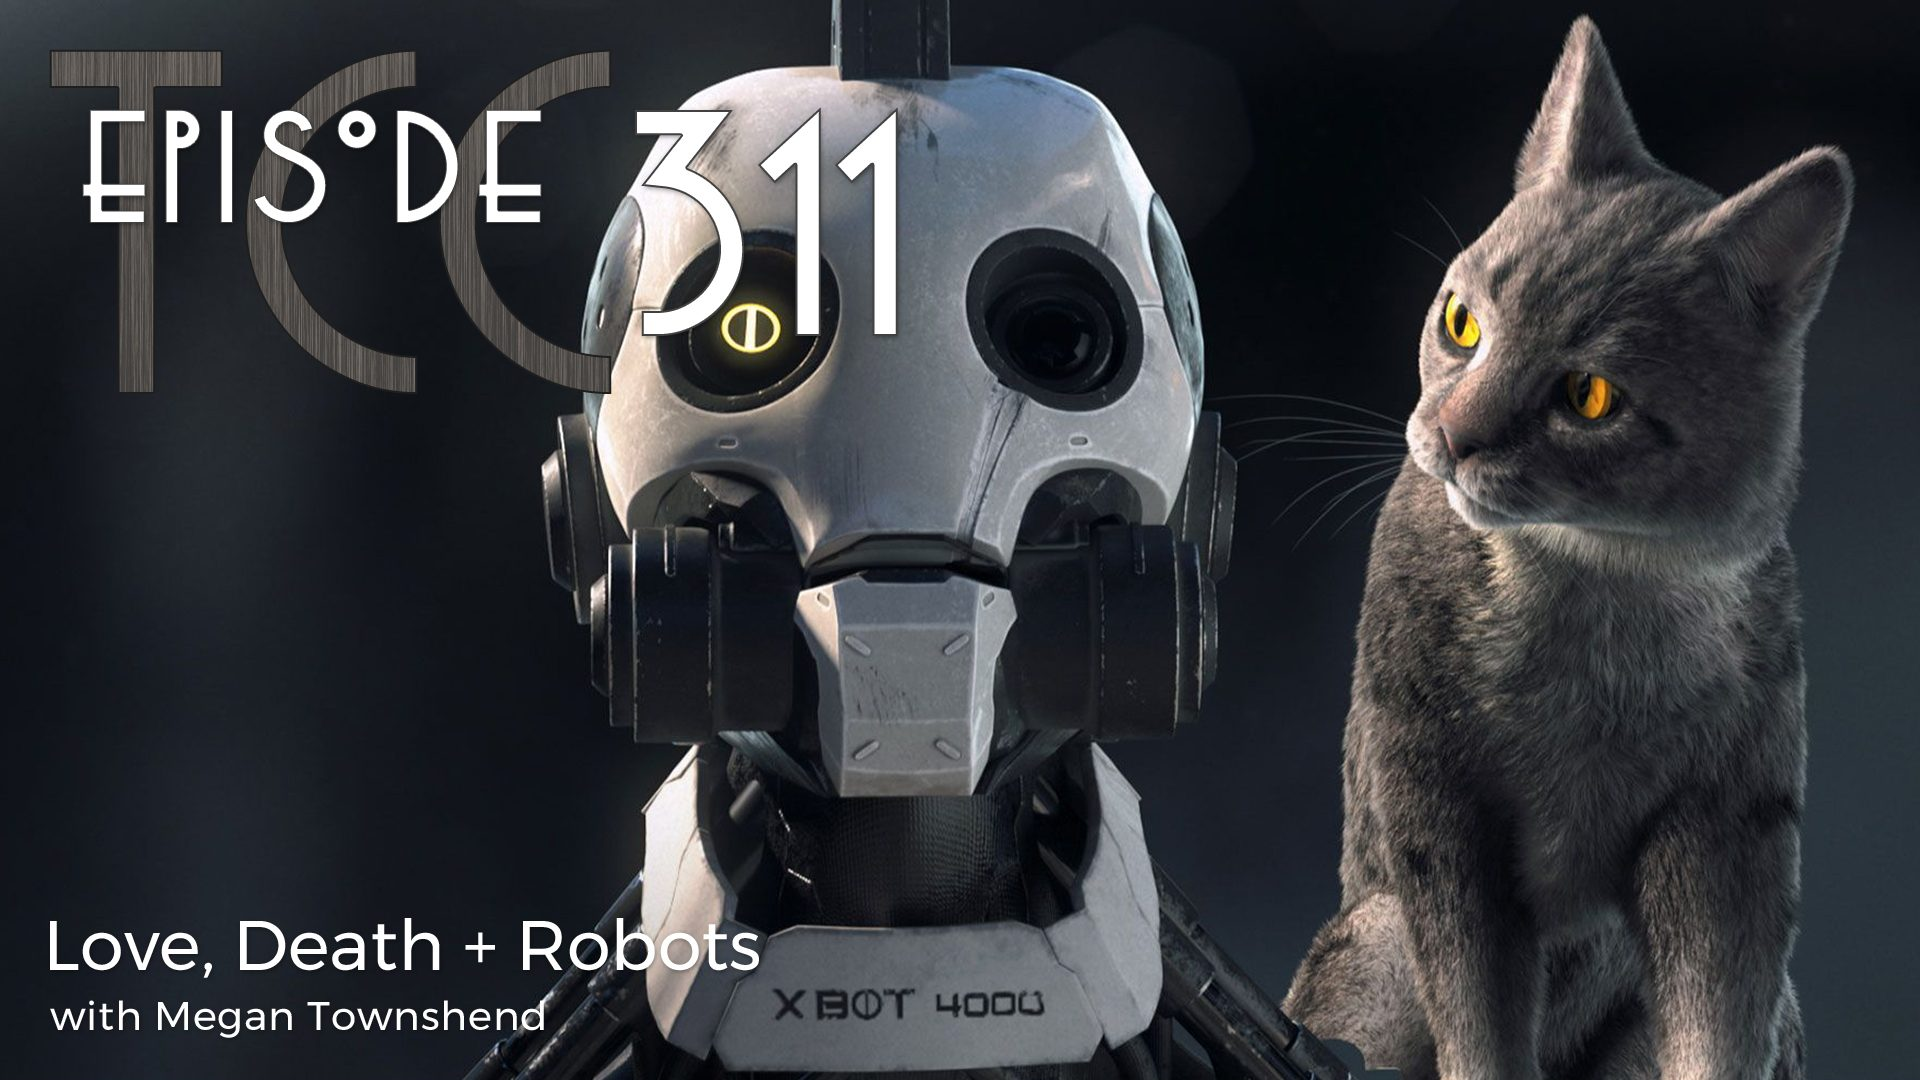 The Citadel Cafe 311: Love, Death + Robots